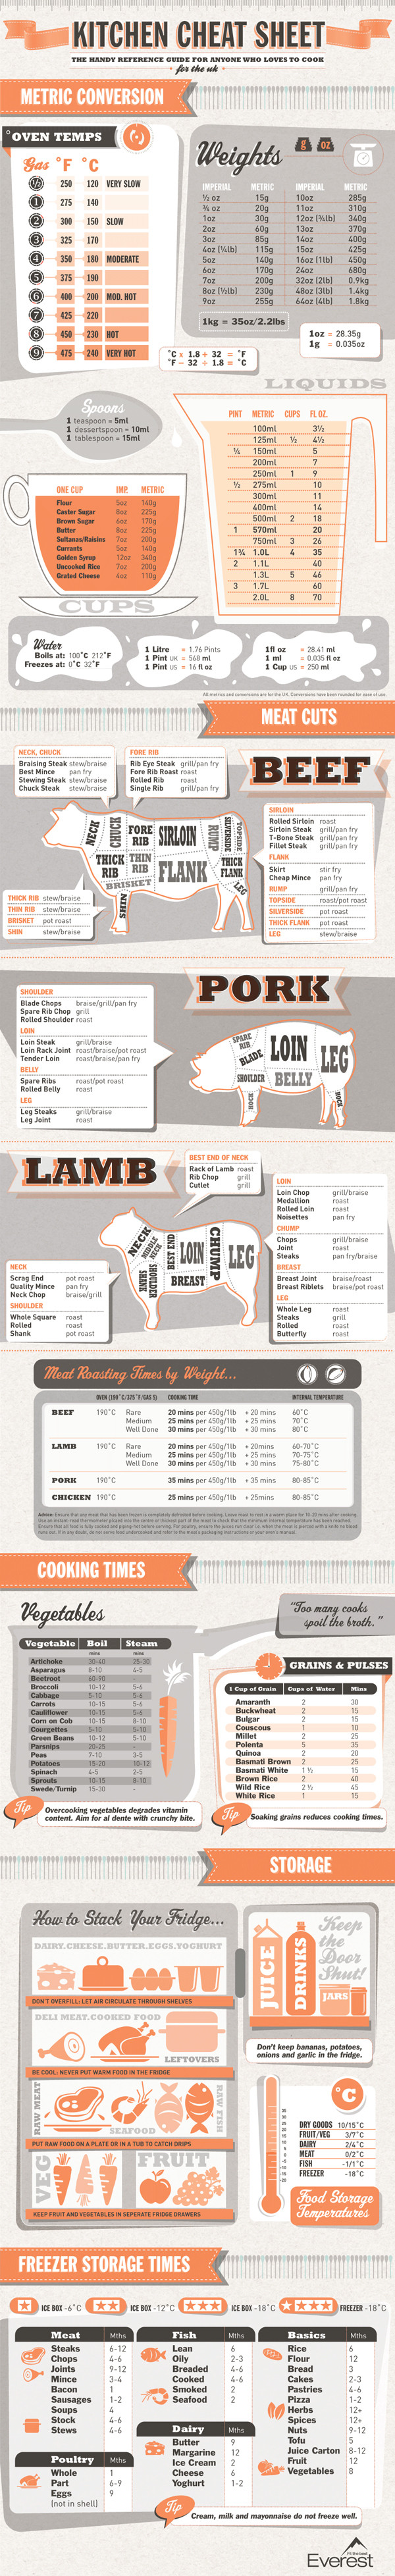 kitchen-cheat-sheet-infographic